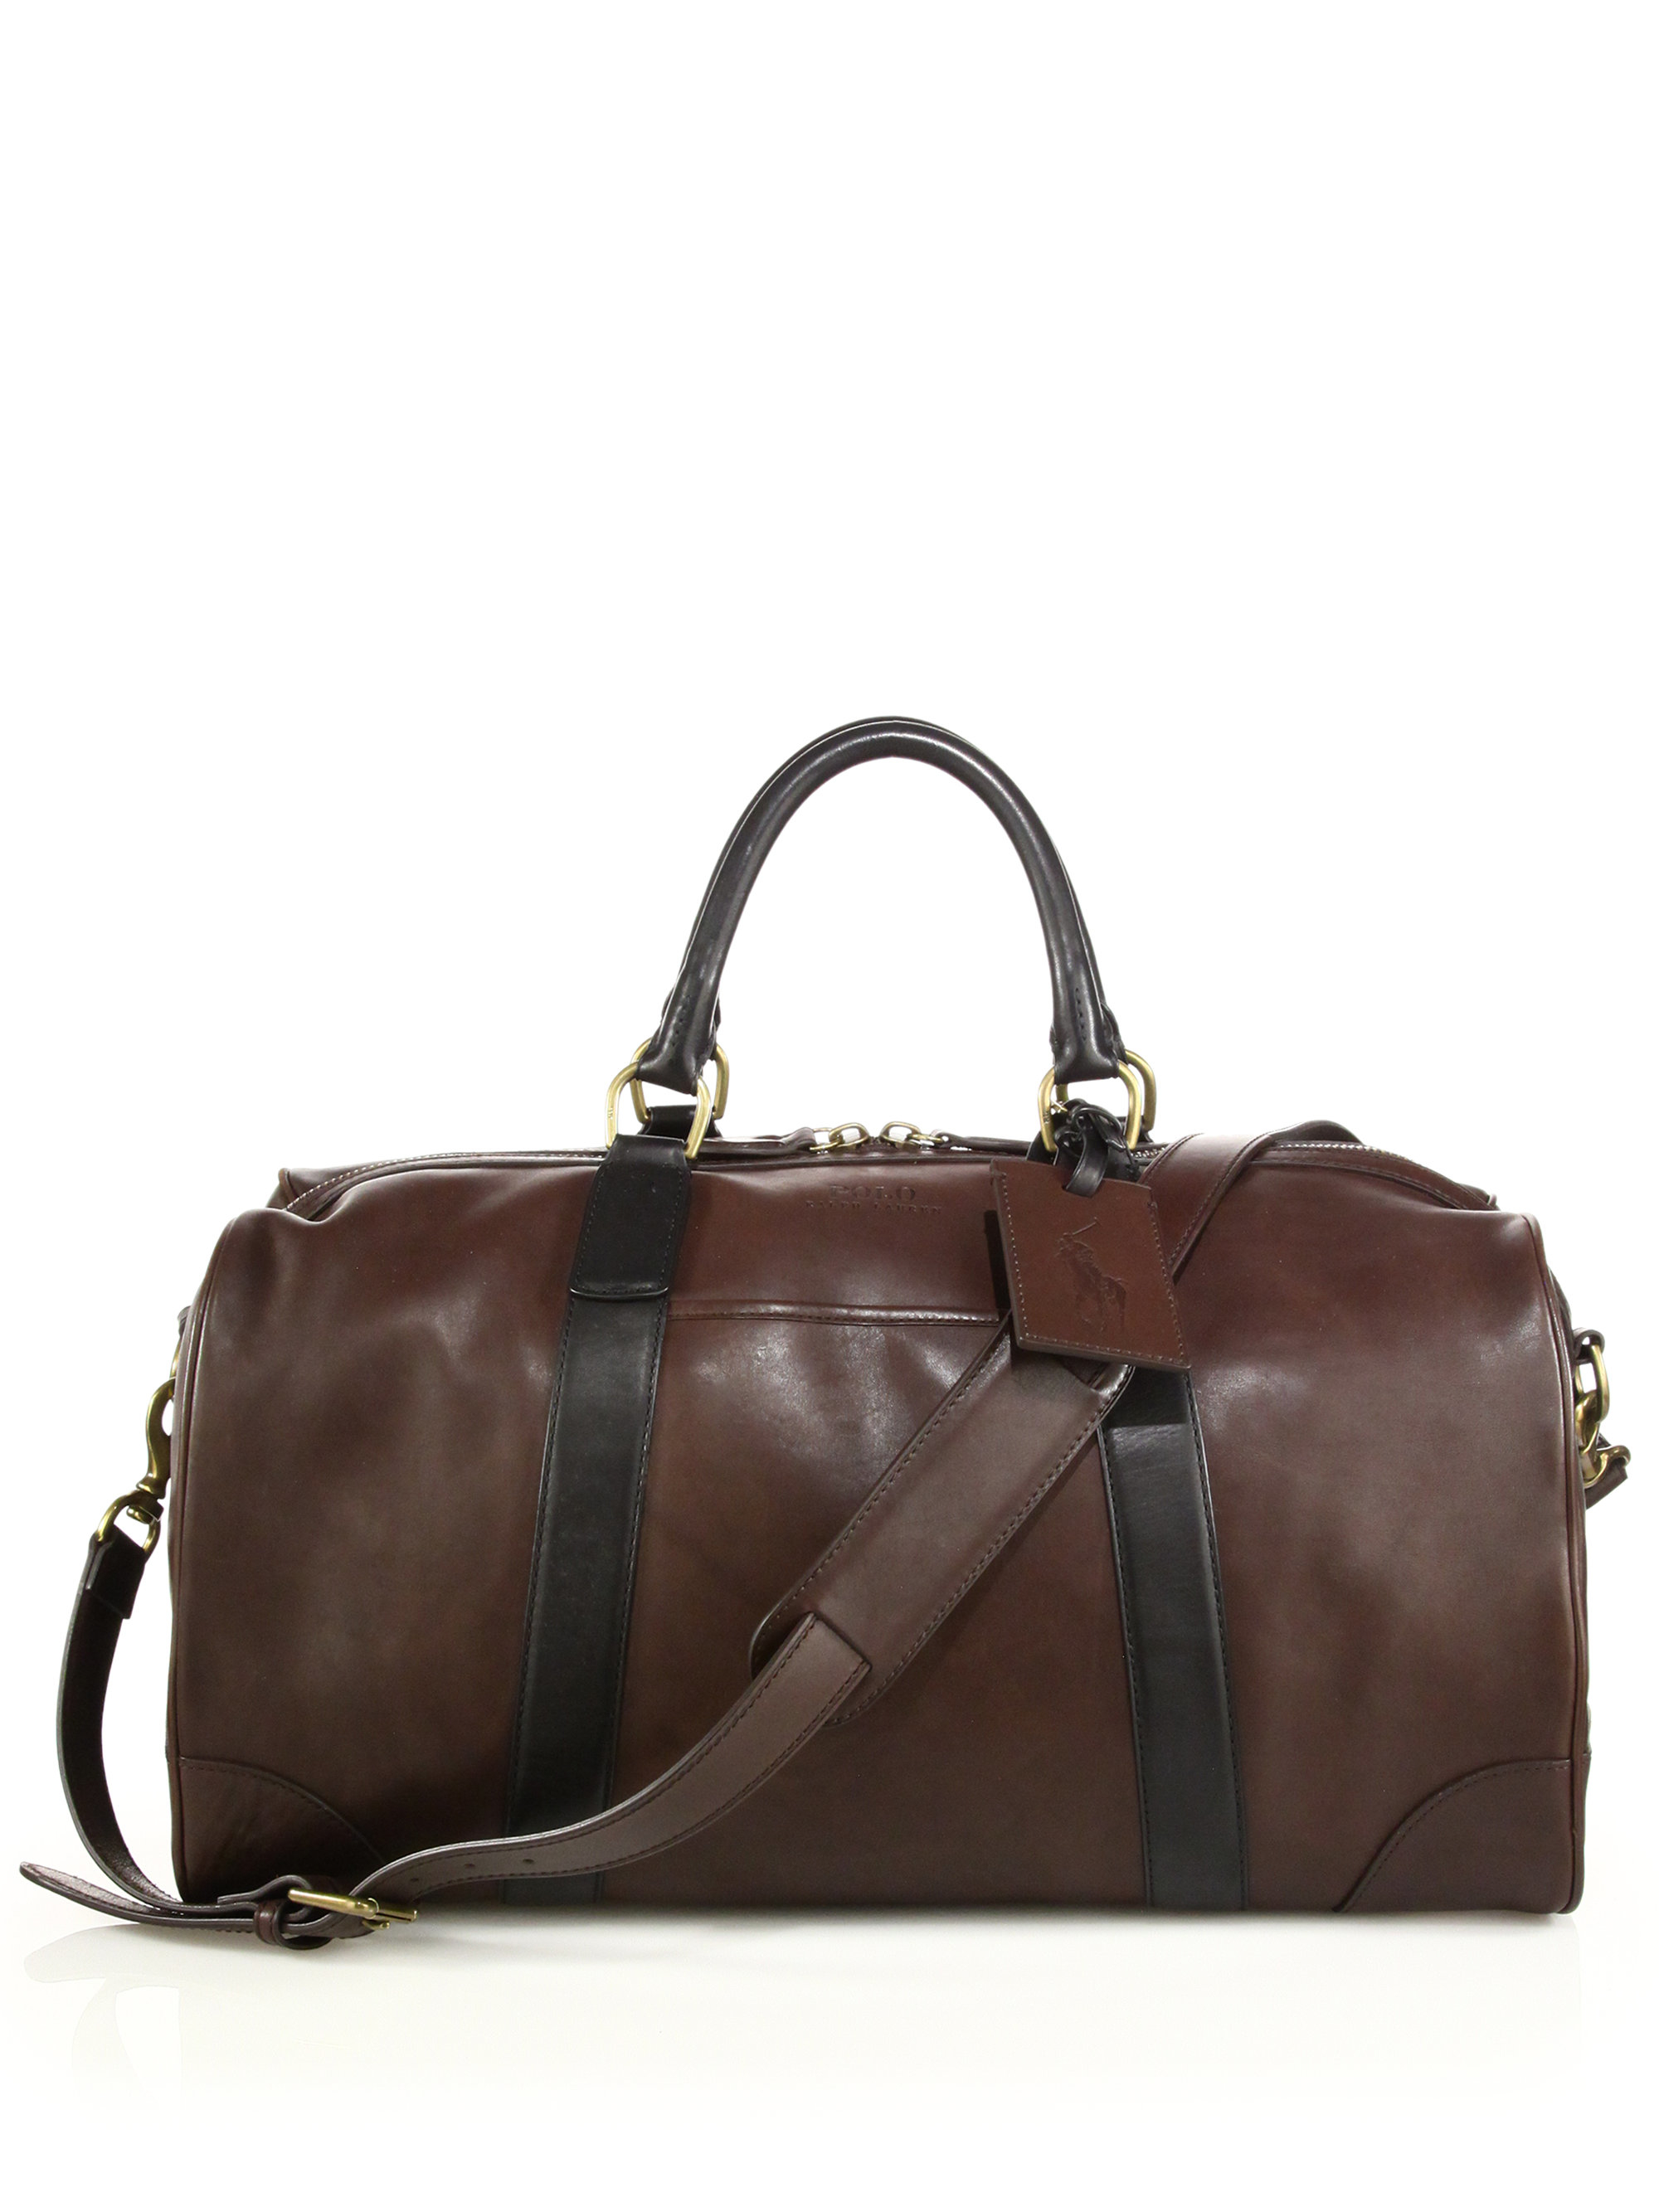 Polo Ralph Lauren   Two-toned Leather Duffel Bag   Lyst